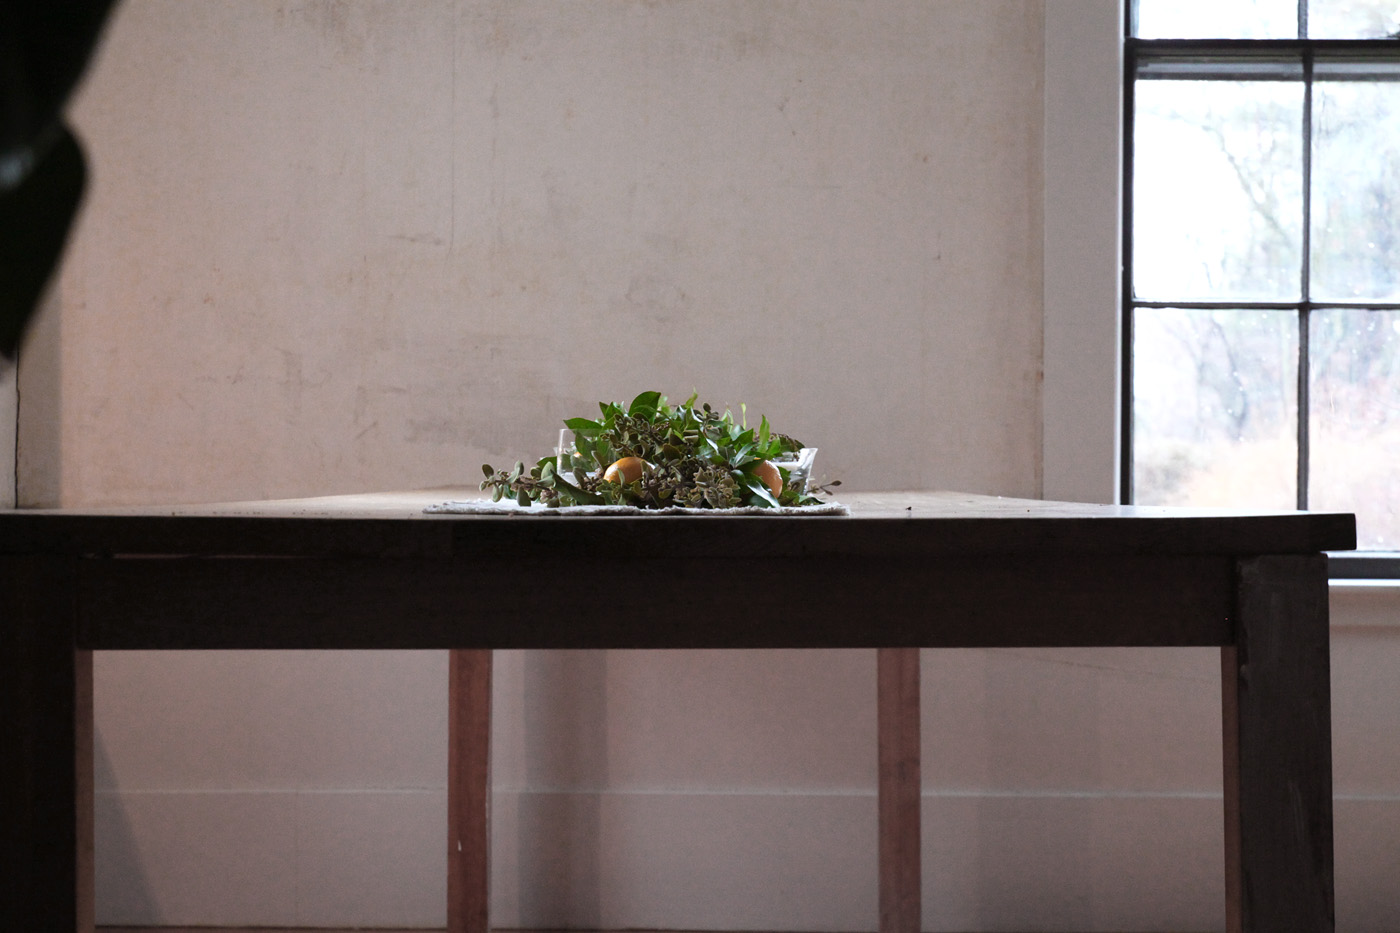 table profile with mistletoe garland